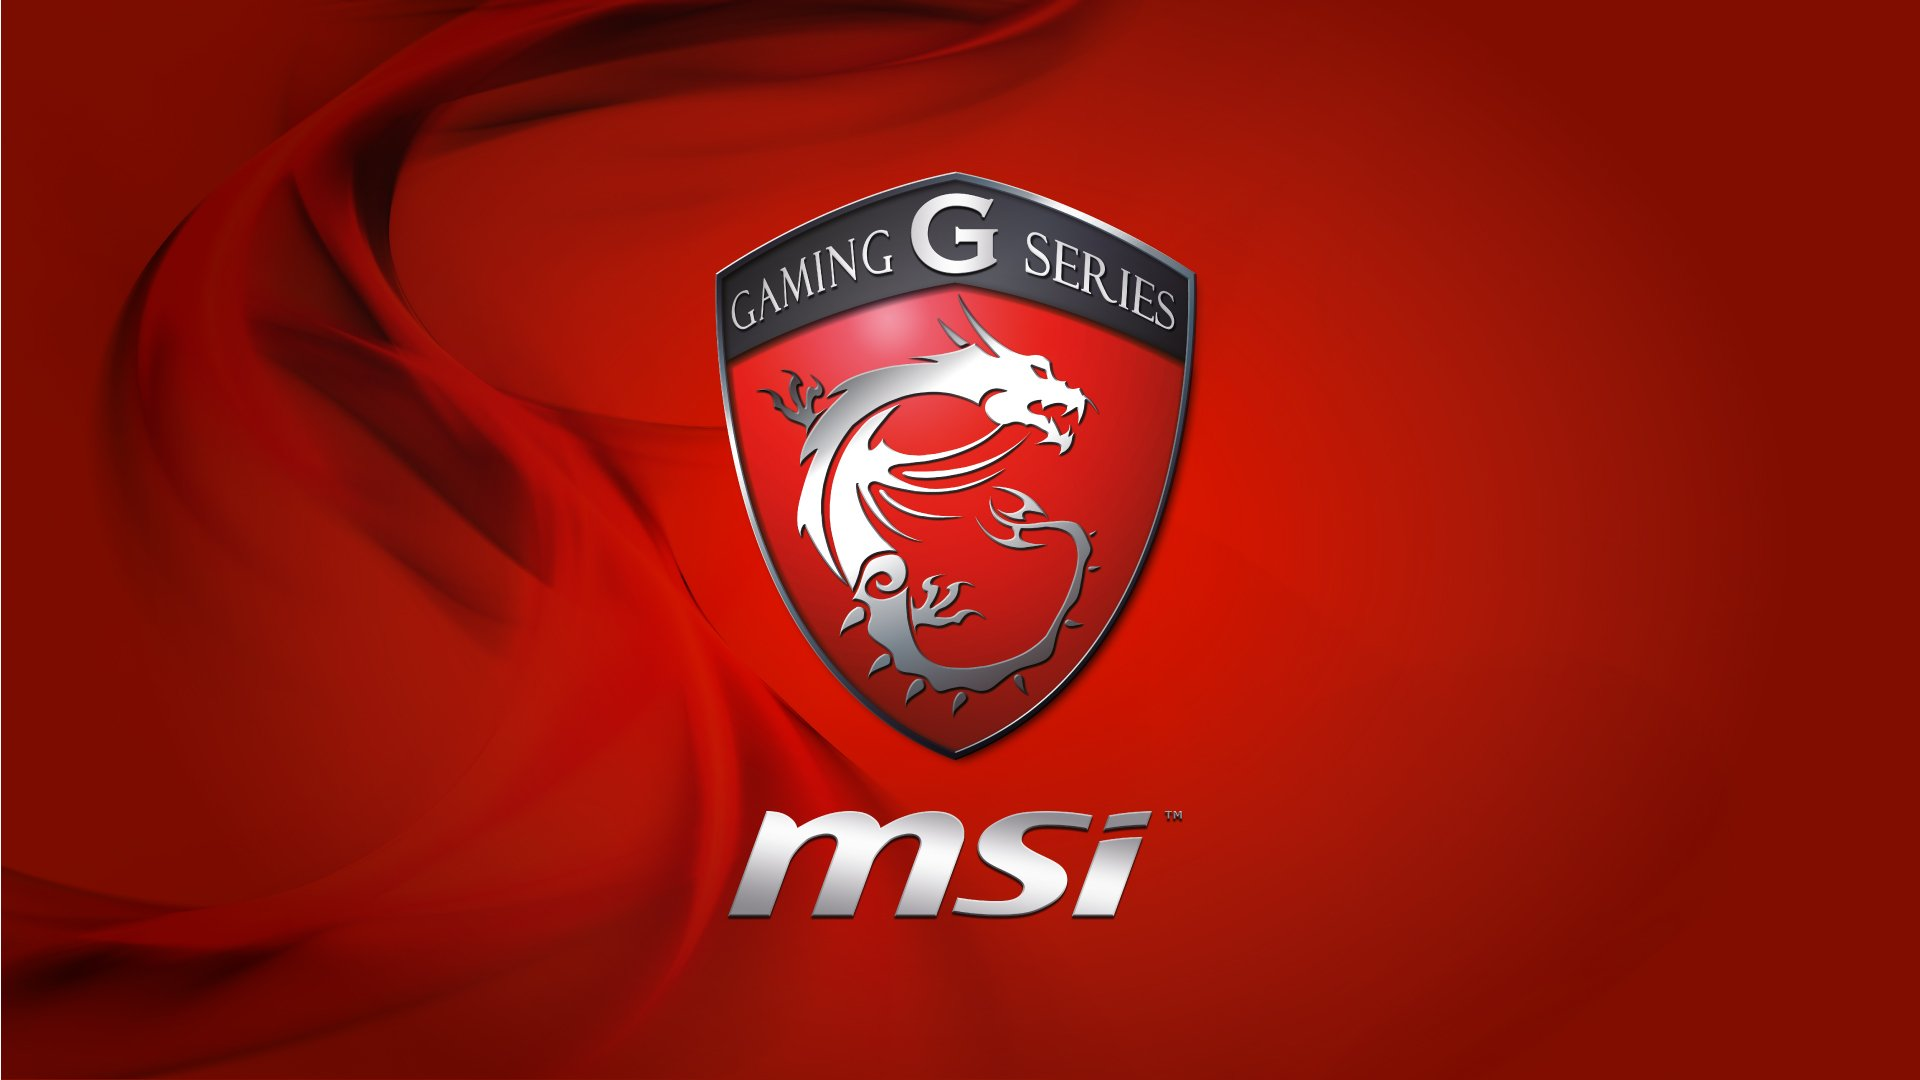 Msi gaming 7 wallpaper wallpapersafari for Fond ecran gaming